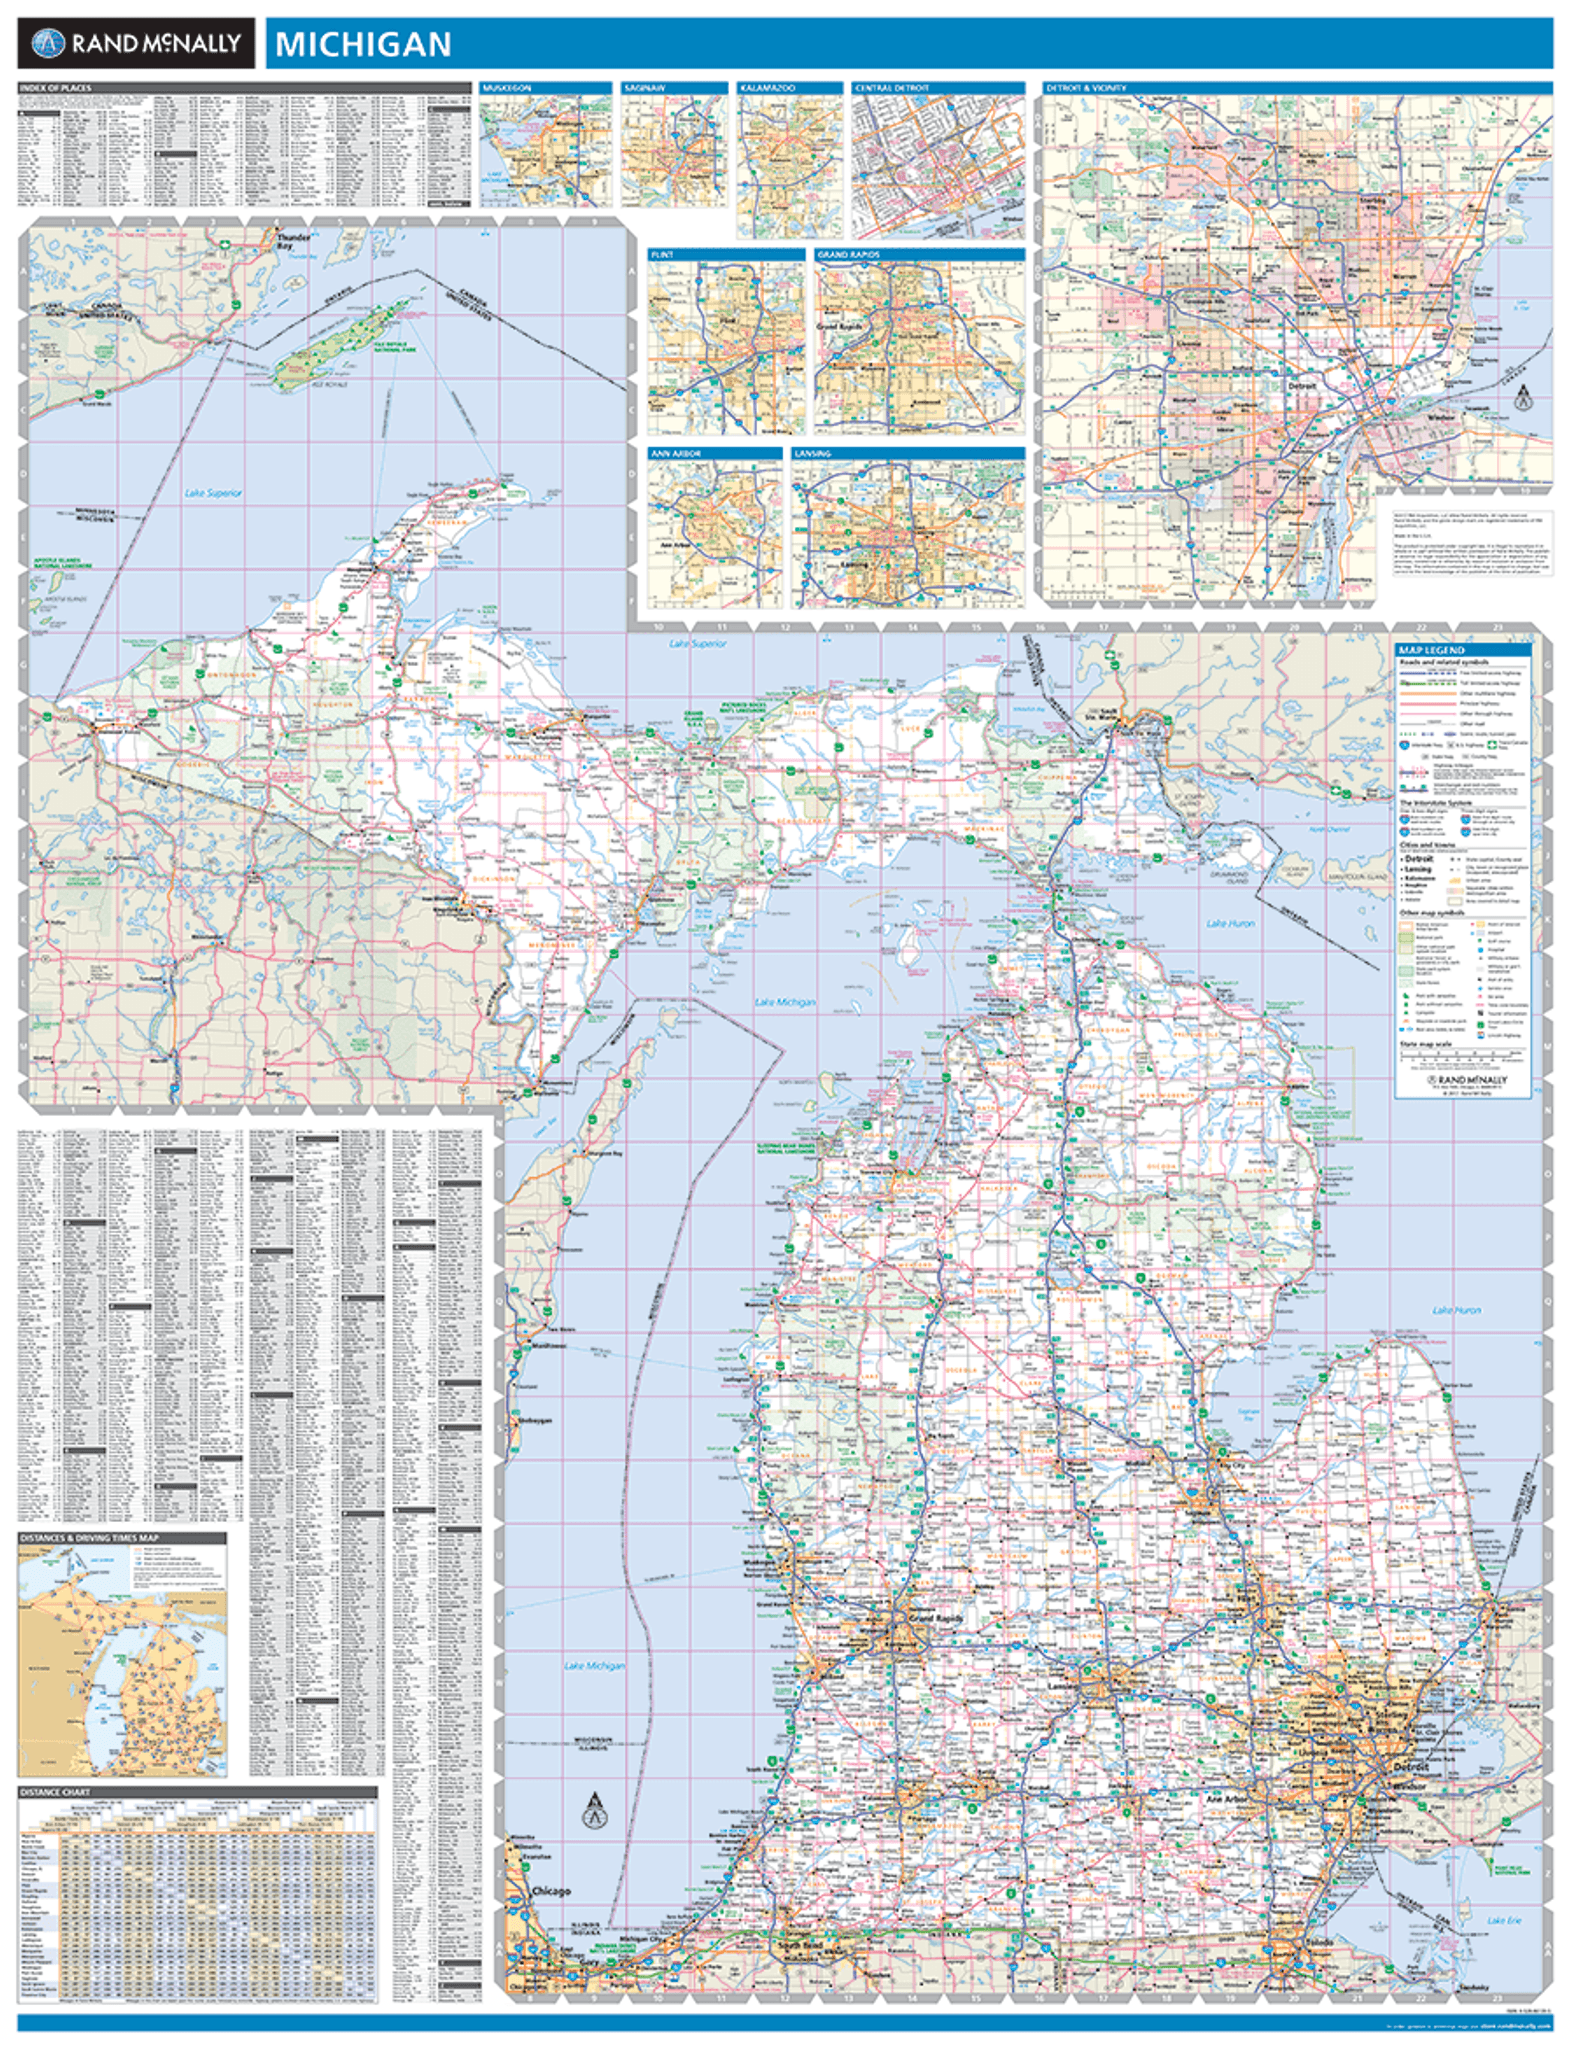 Rand McNally Michigan State Wall Map - State map of michigan